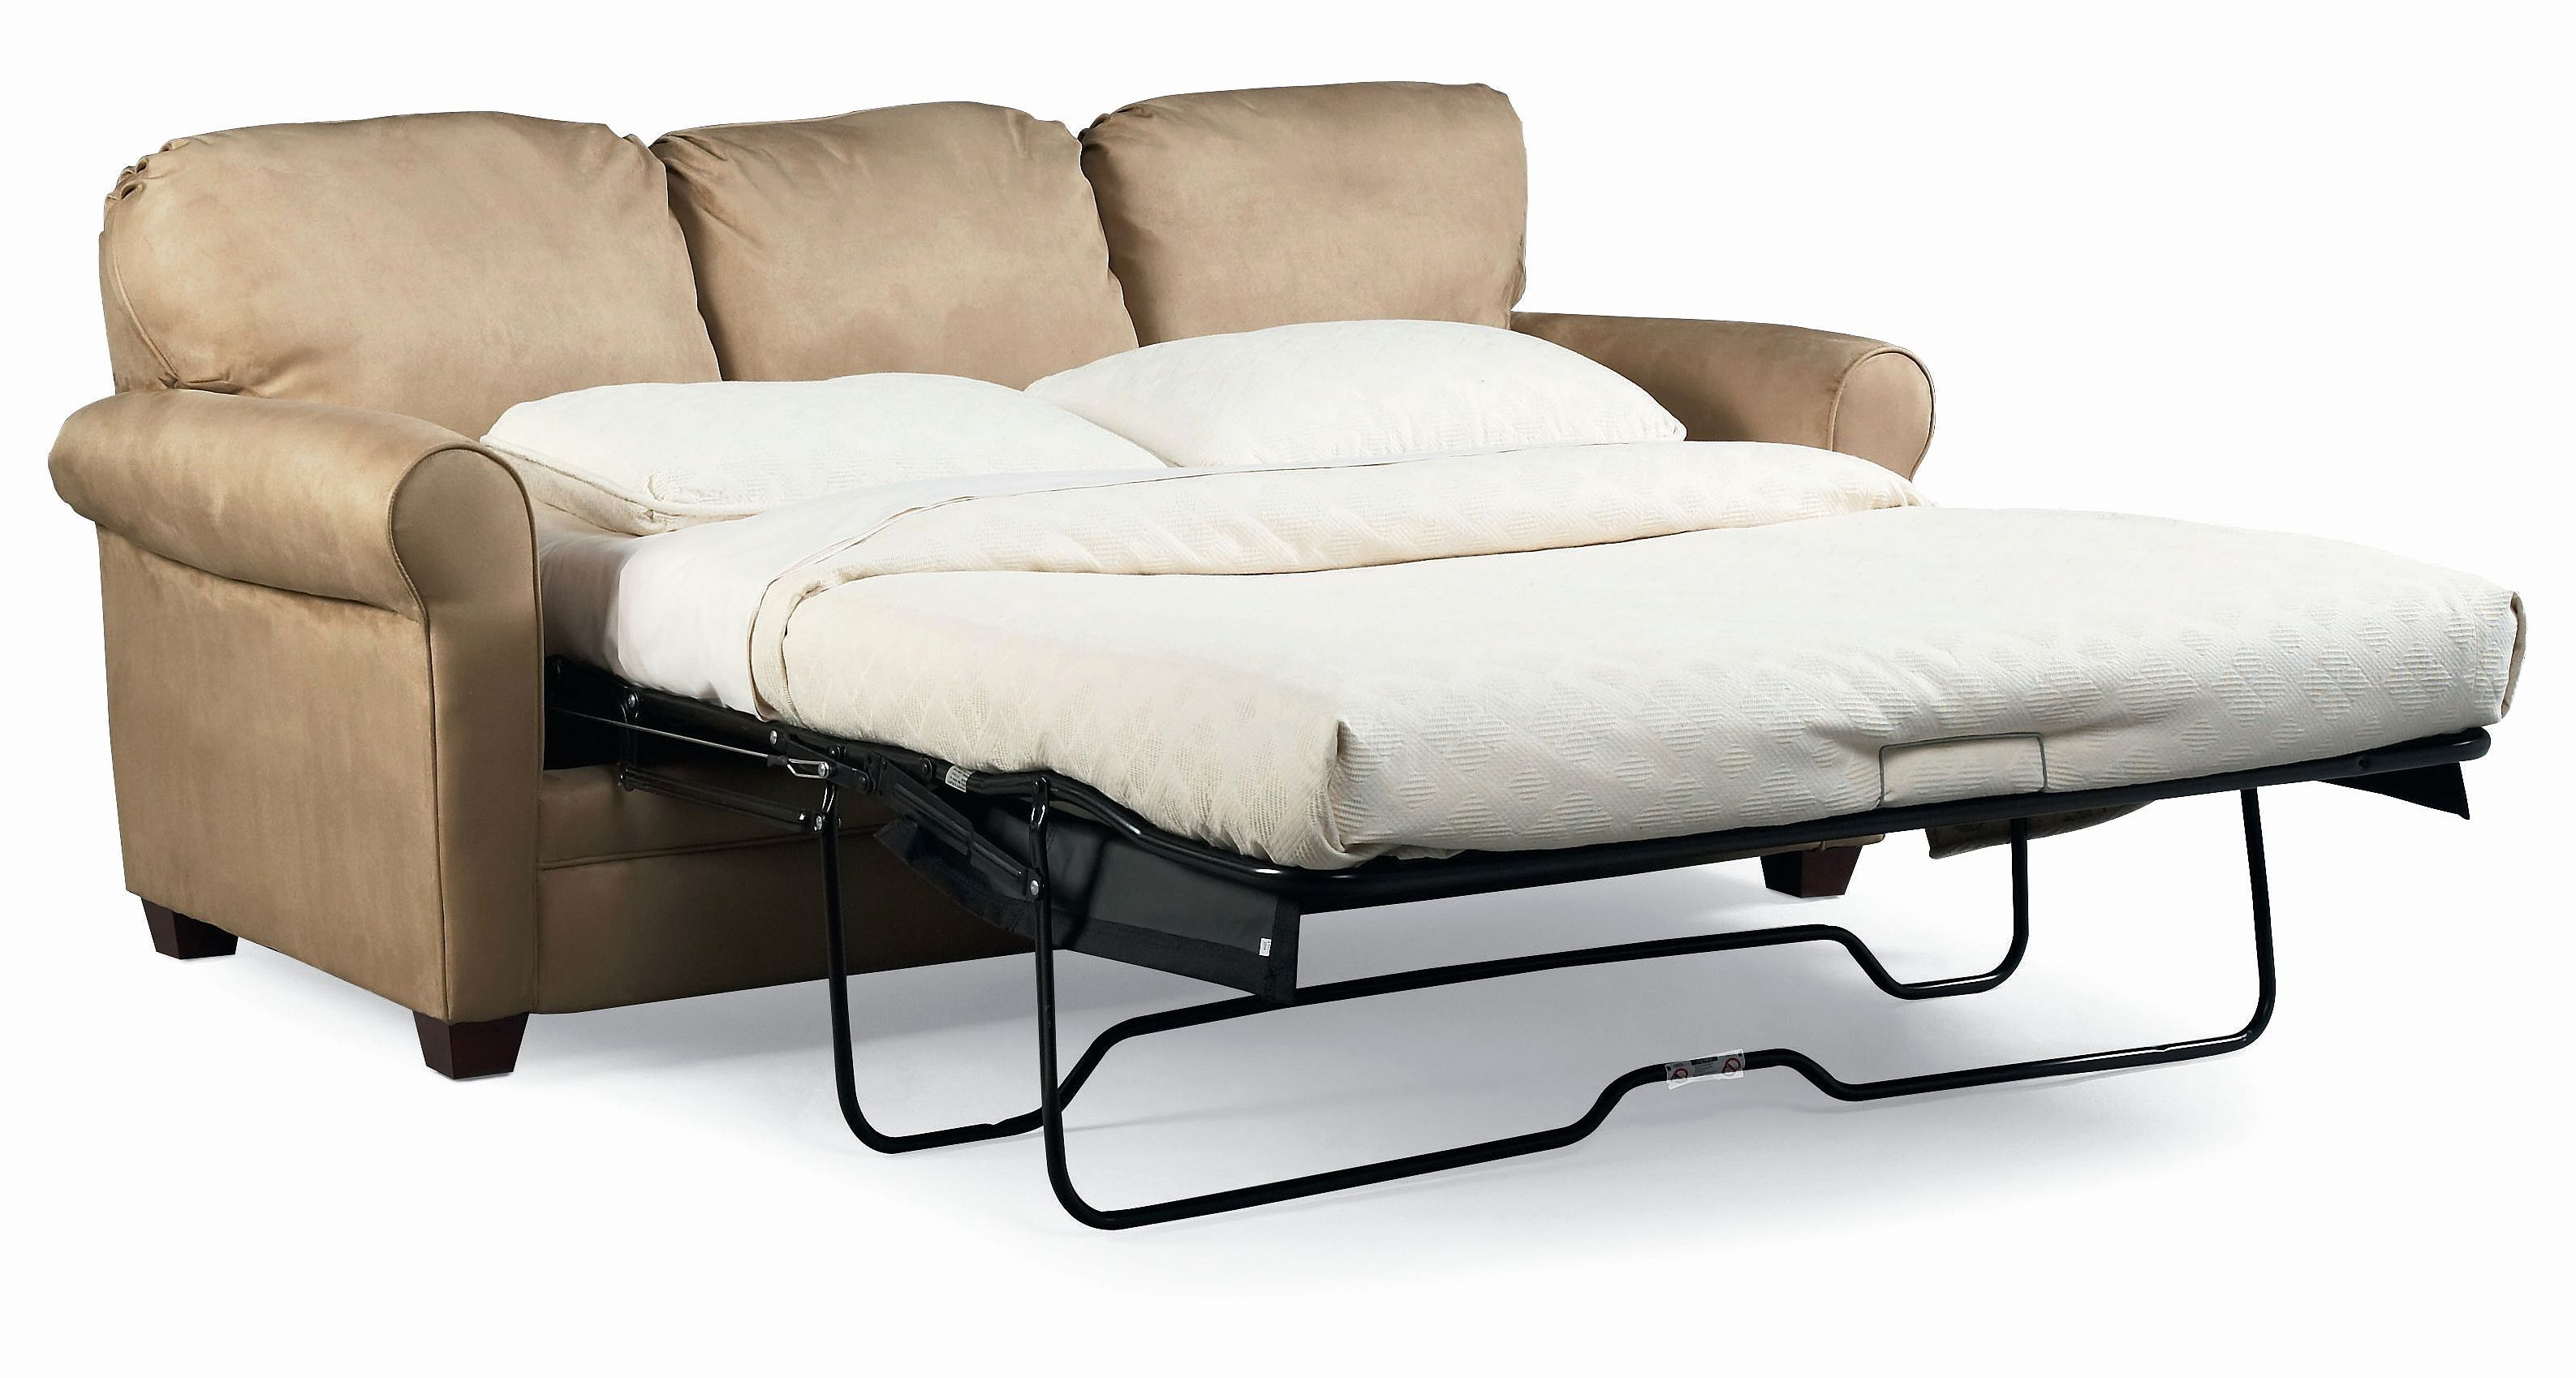 Awesome Leather Queen Sleeper Sofa Pictures White Mattress